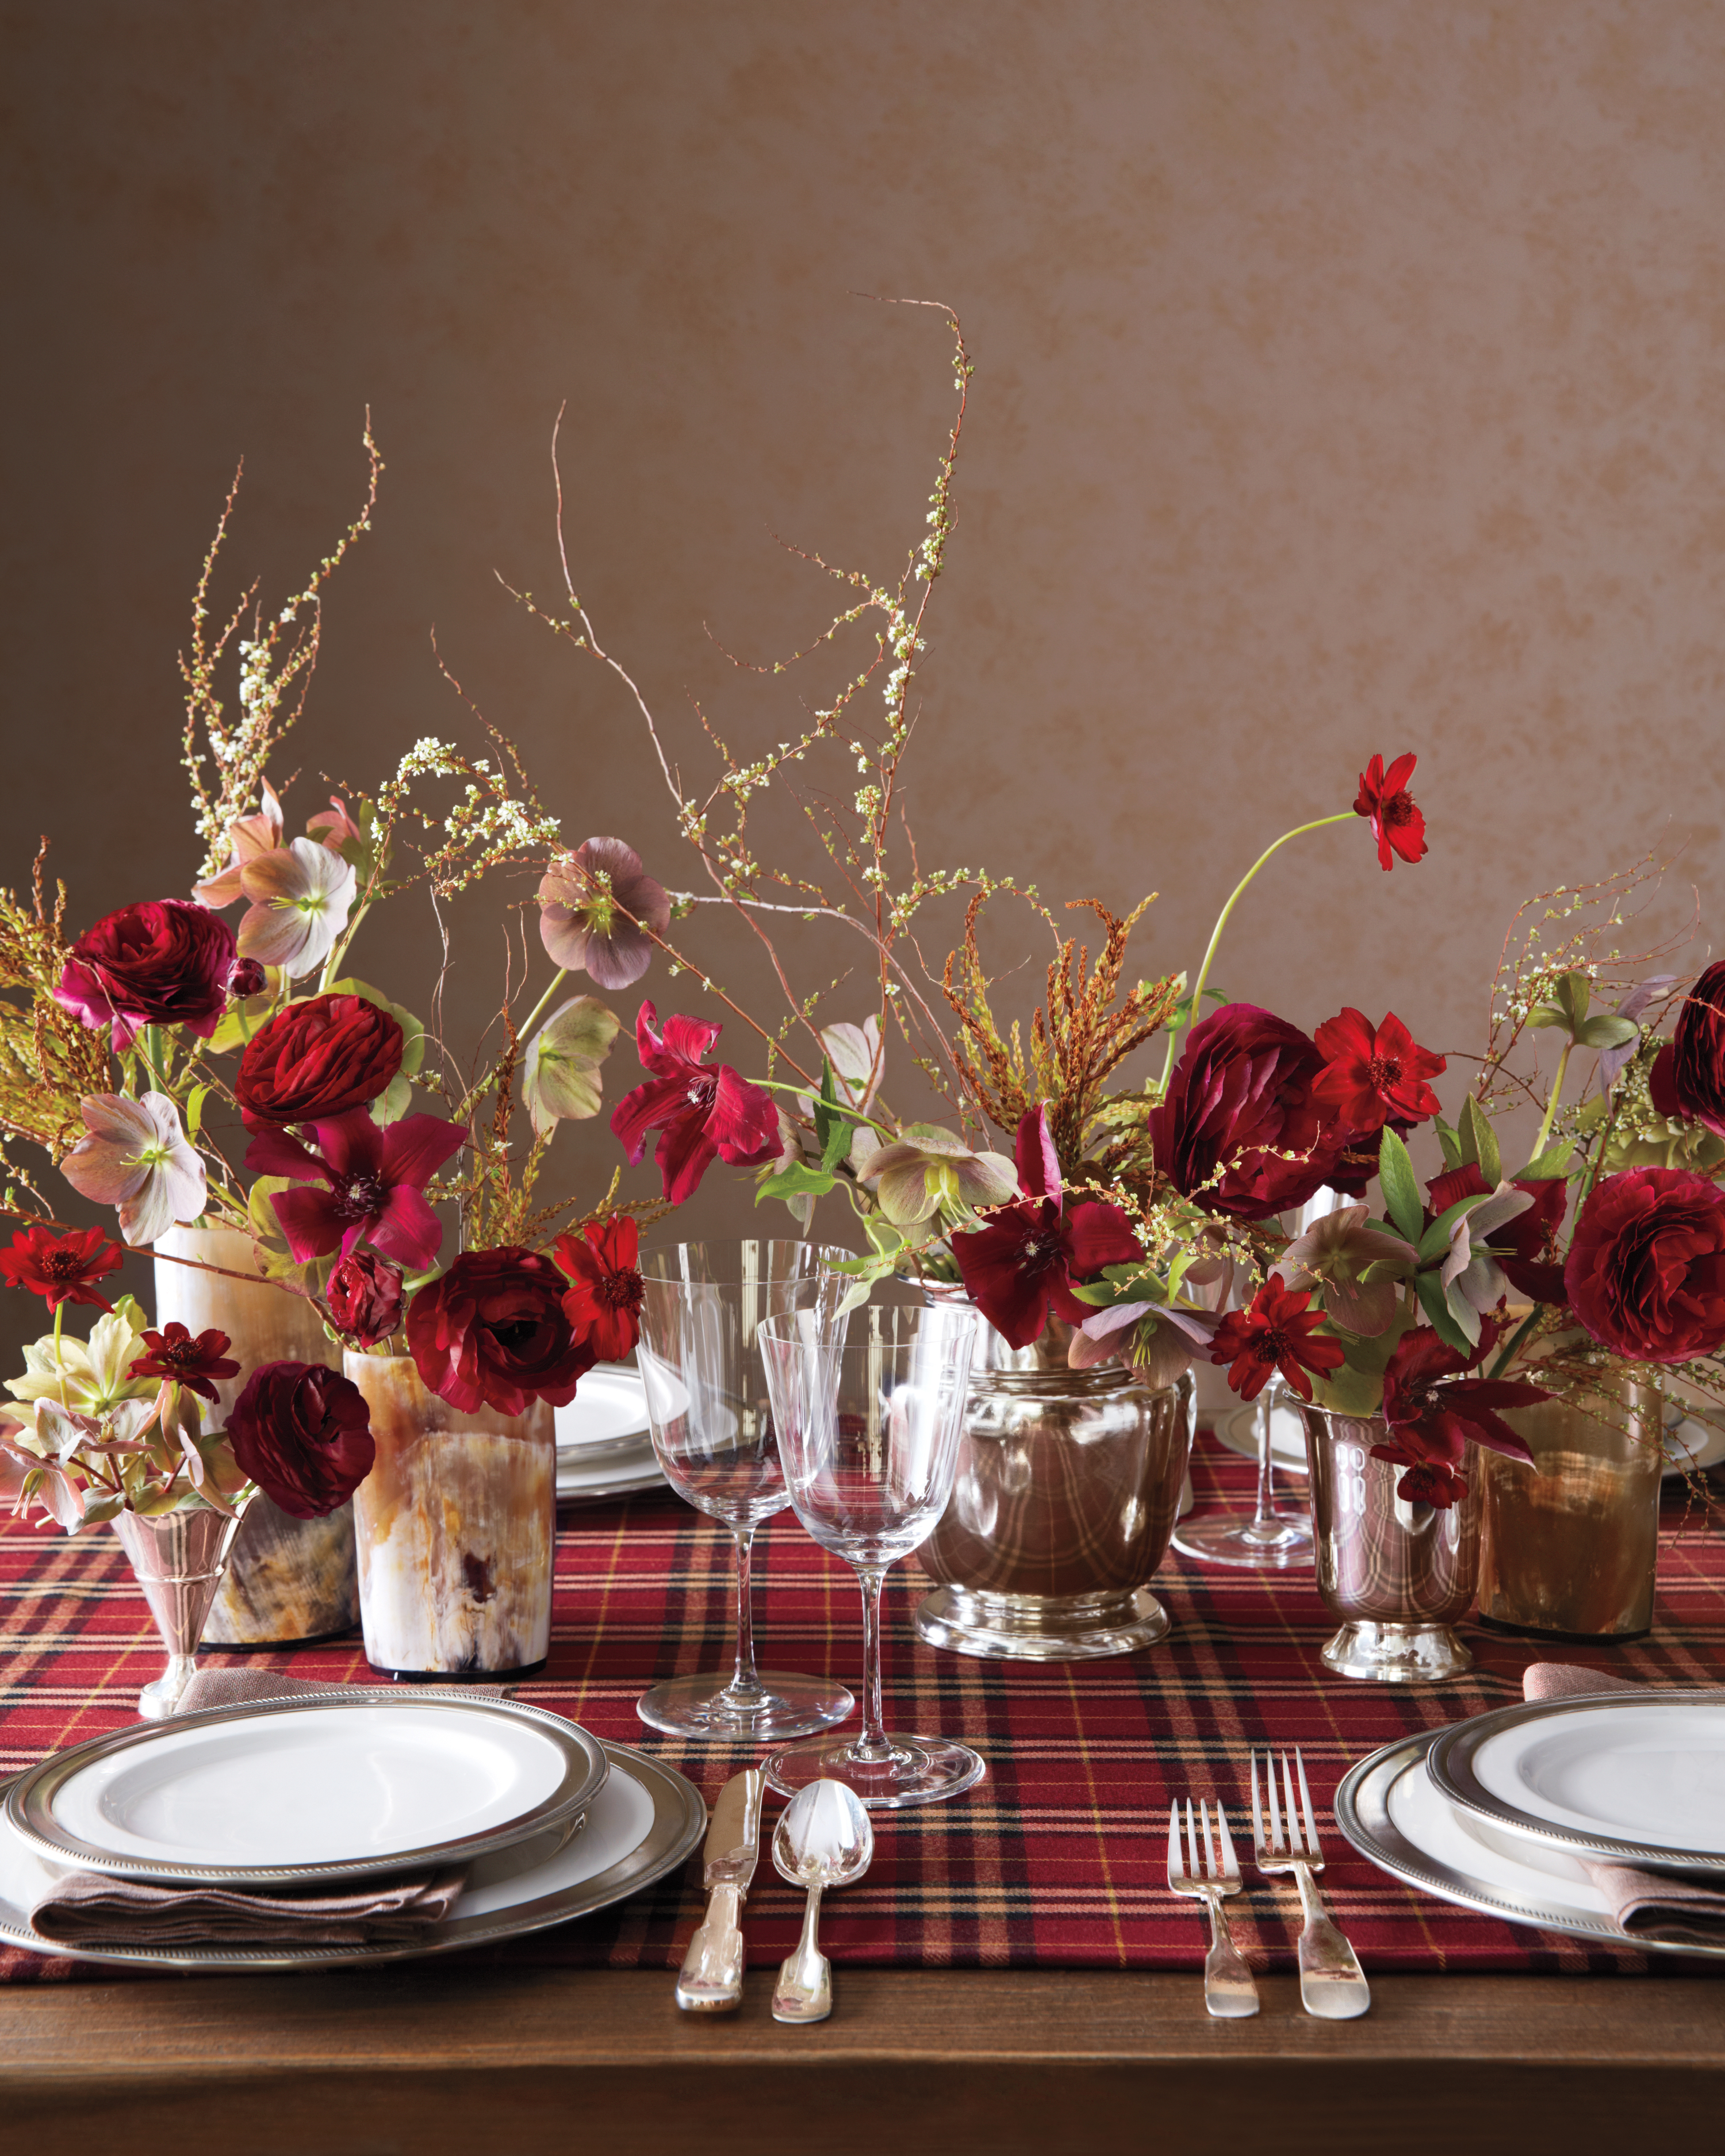 centerpiece-v2-046-exp2-flowers-and-040-comp-mwd110159.jpg